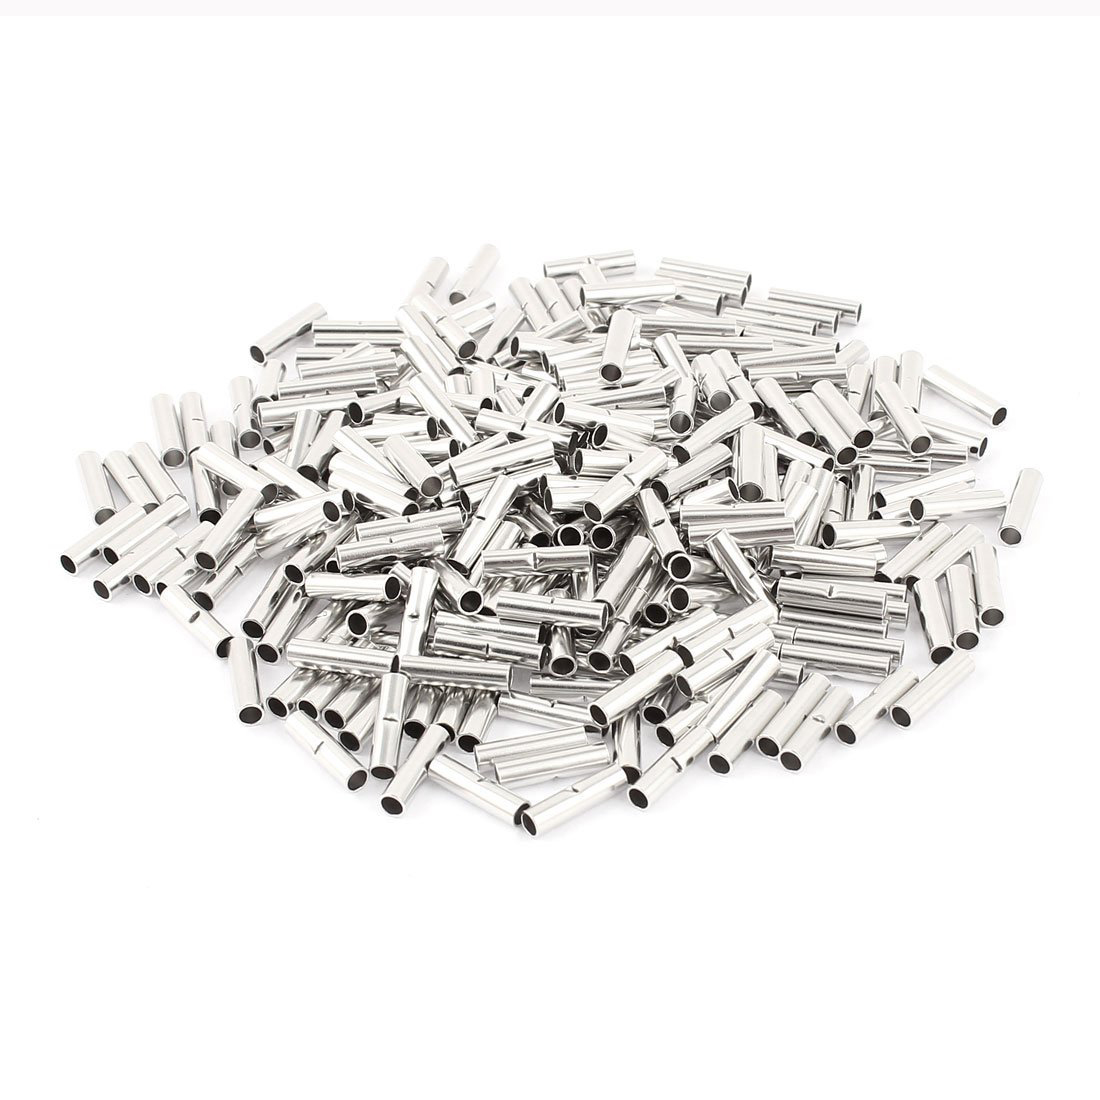 LHLL-300Pcs BN-2 Uninsulated Butt Connectors Terminal for 16-14 A.W.G Wire